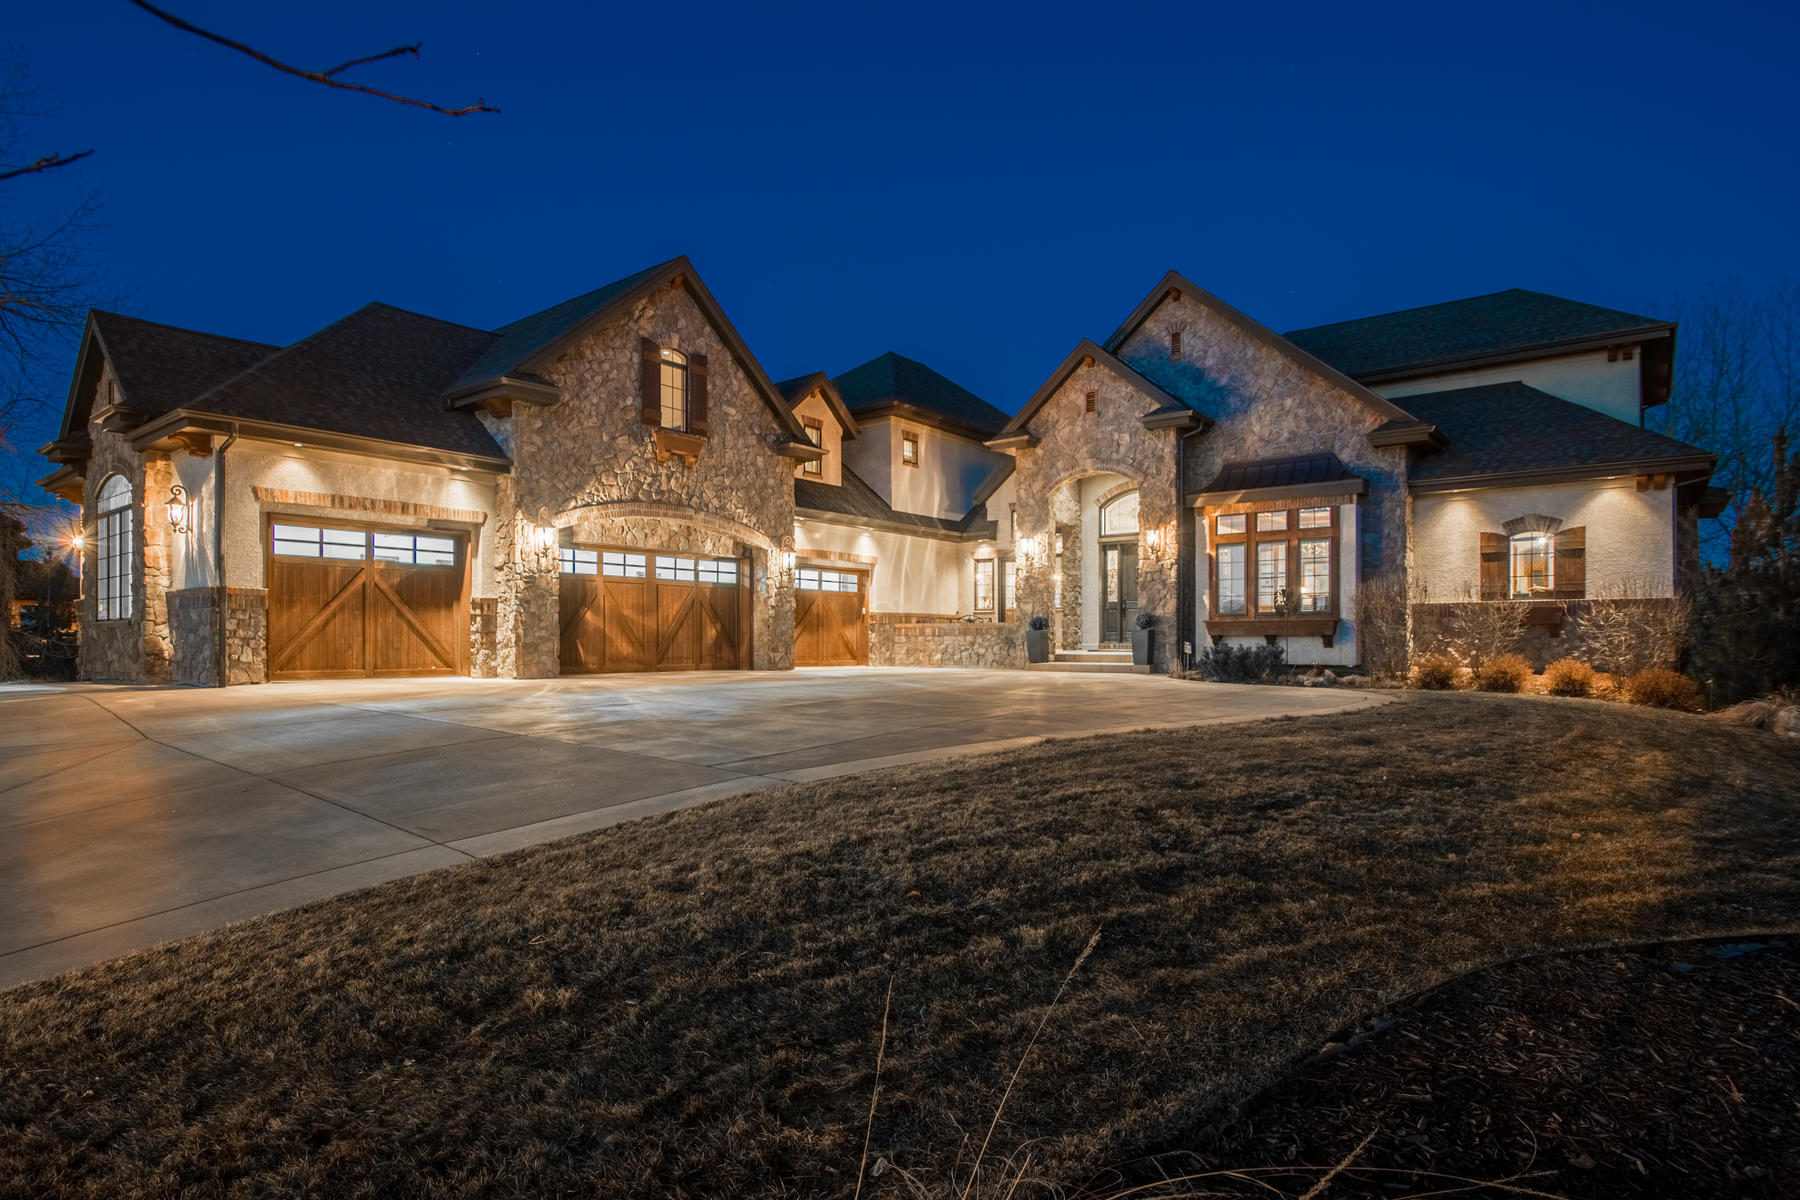 Single Family Homes for Sale at For the Discriminating Buyer, This Elegant English Manor Does Not Disappoint! 5900 S Watson Lane, Littleton, Colorado 80123 United States